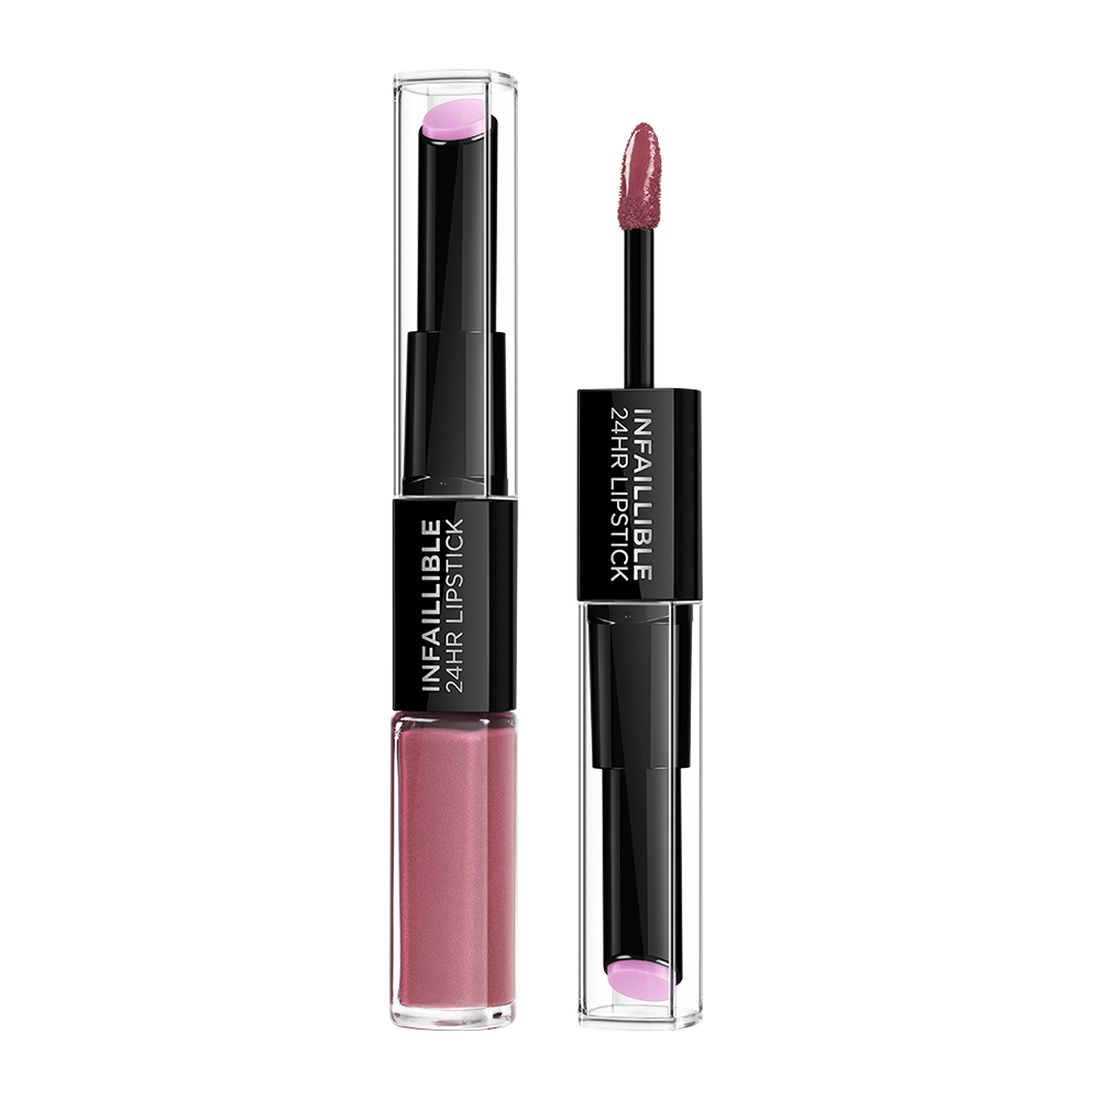 L'Oréal Infallible 2Steps Lipstick 18ml 213 Toujours Teaberry